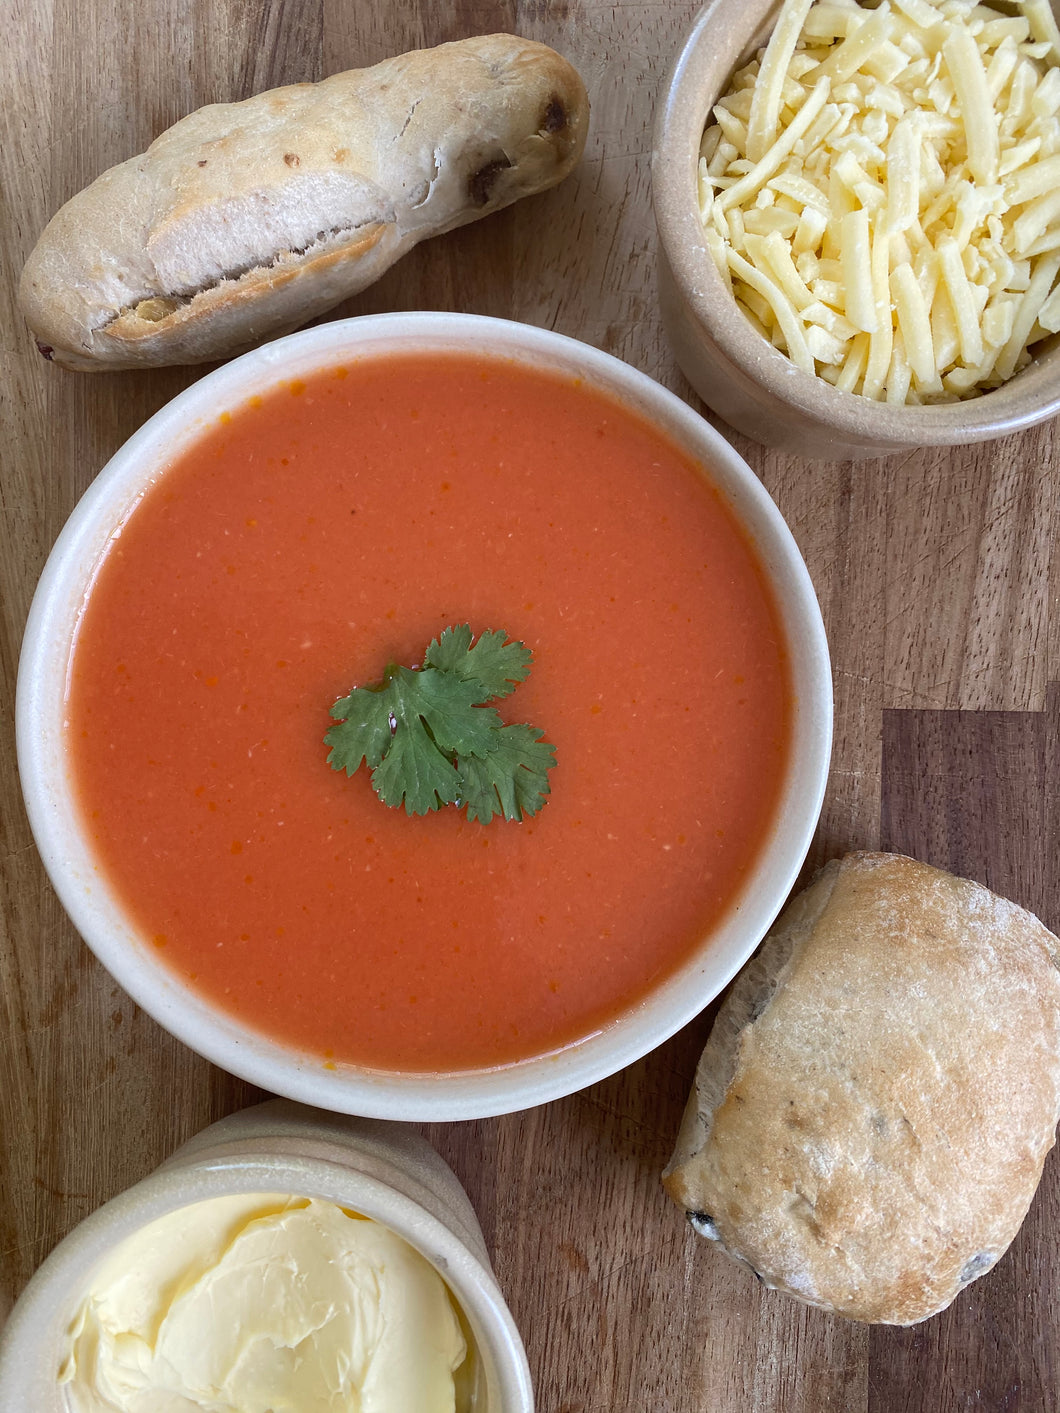 #7 Delivered cold - Tomato & basil soup with roll and grated cheese and butter portion